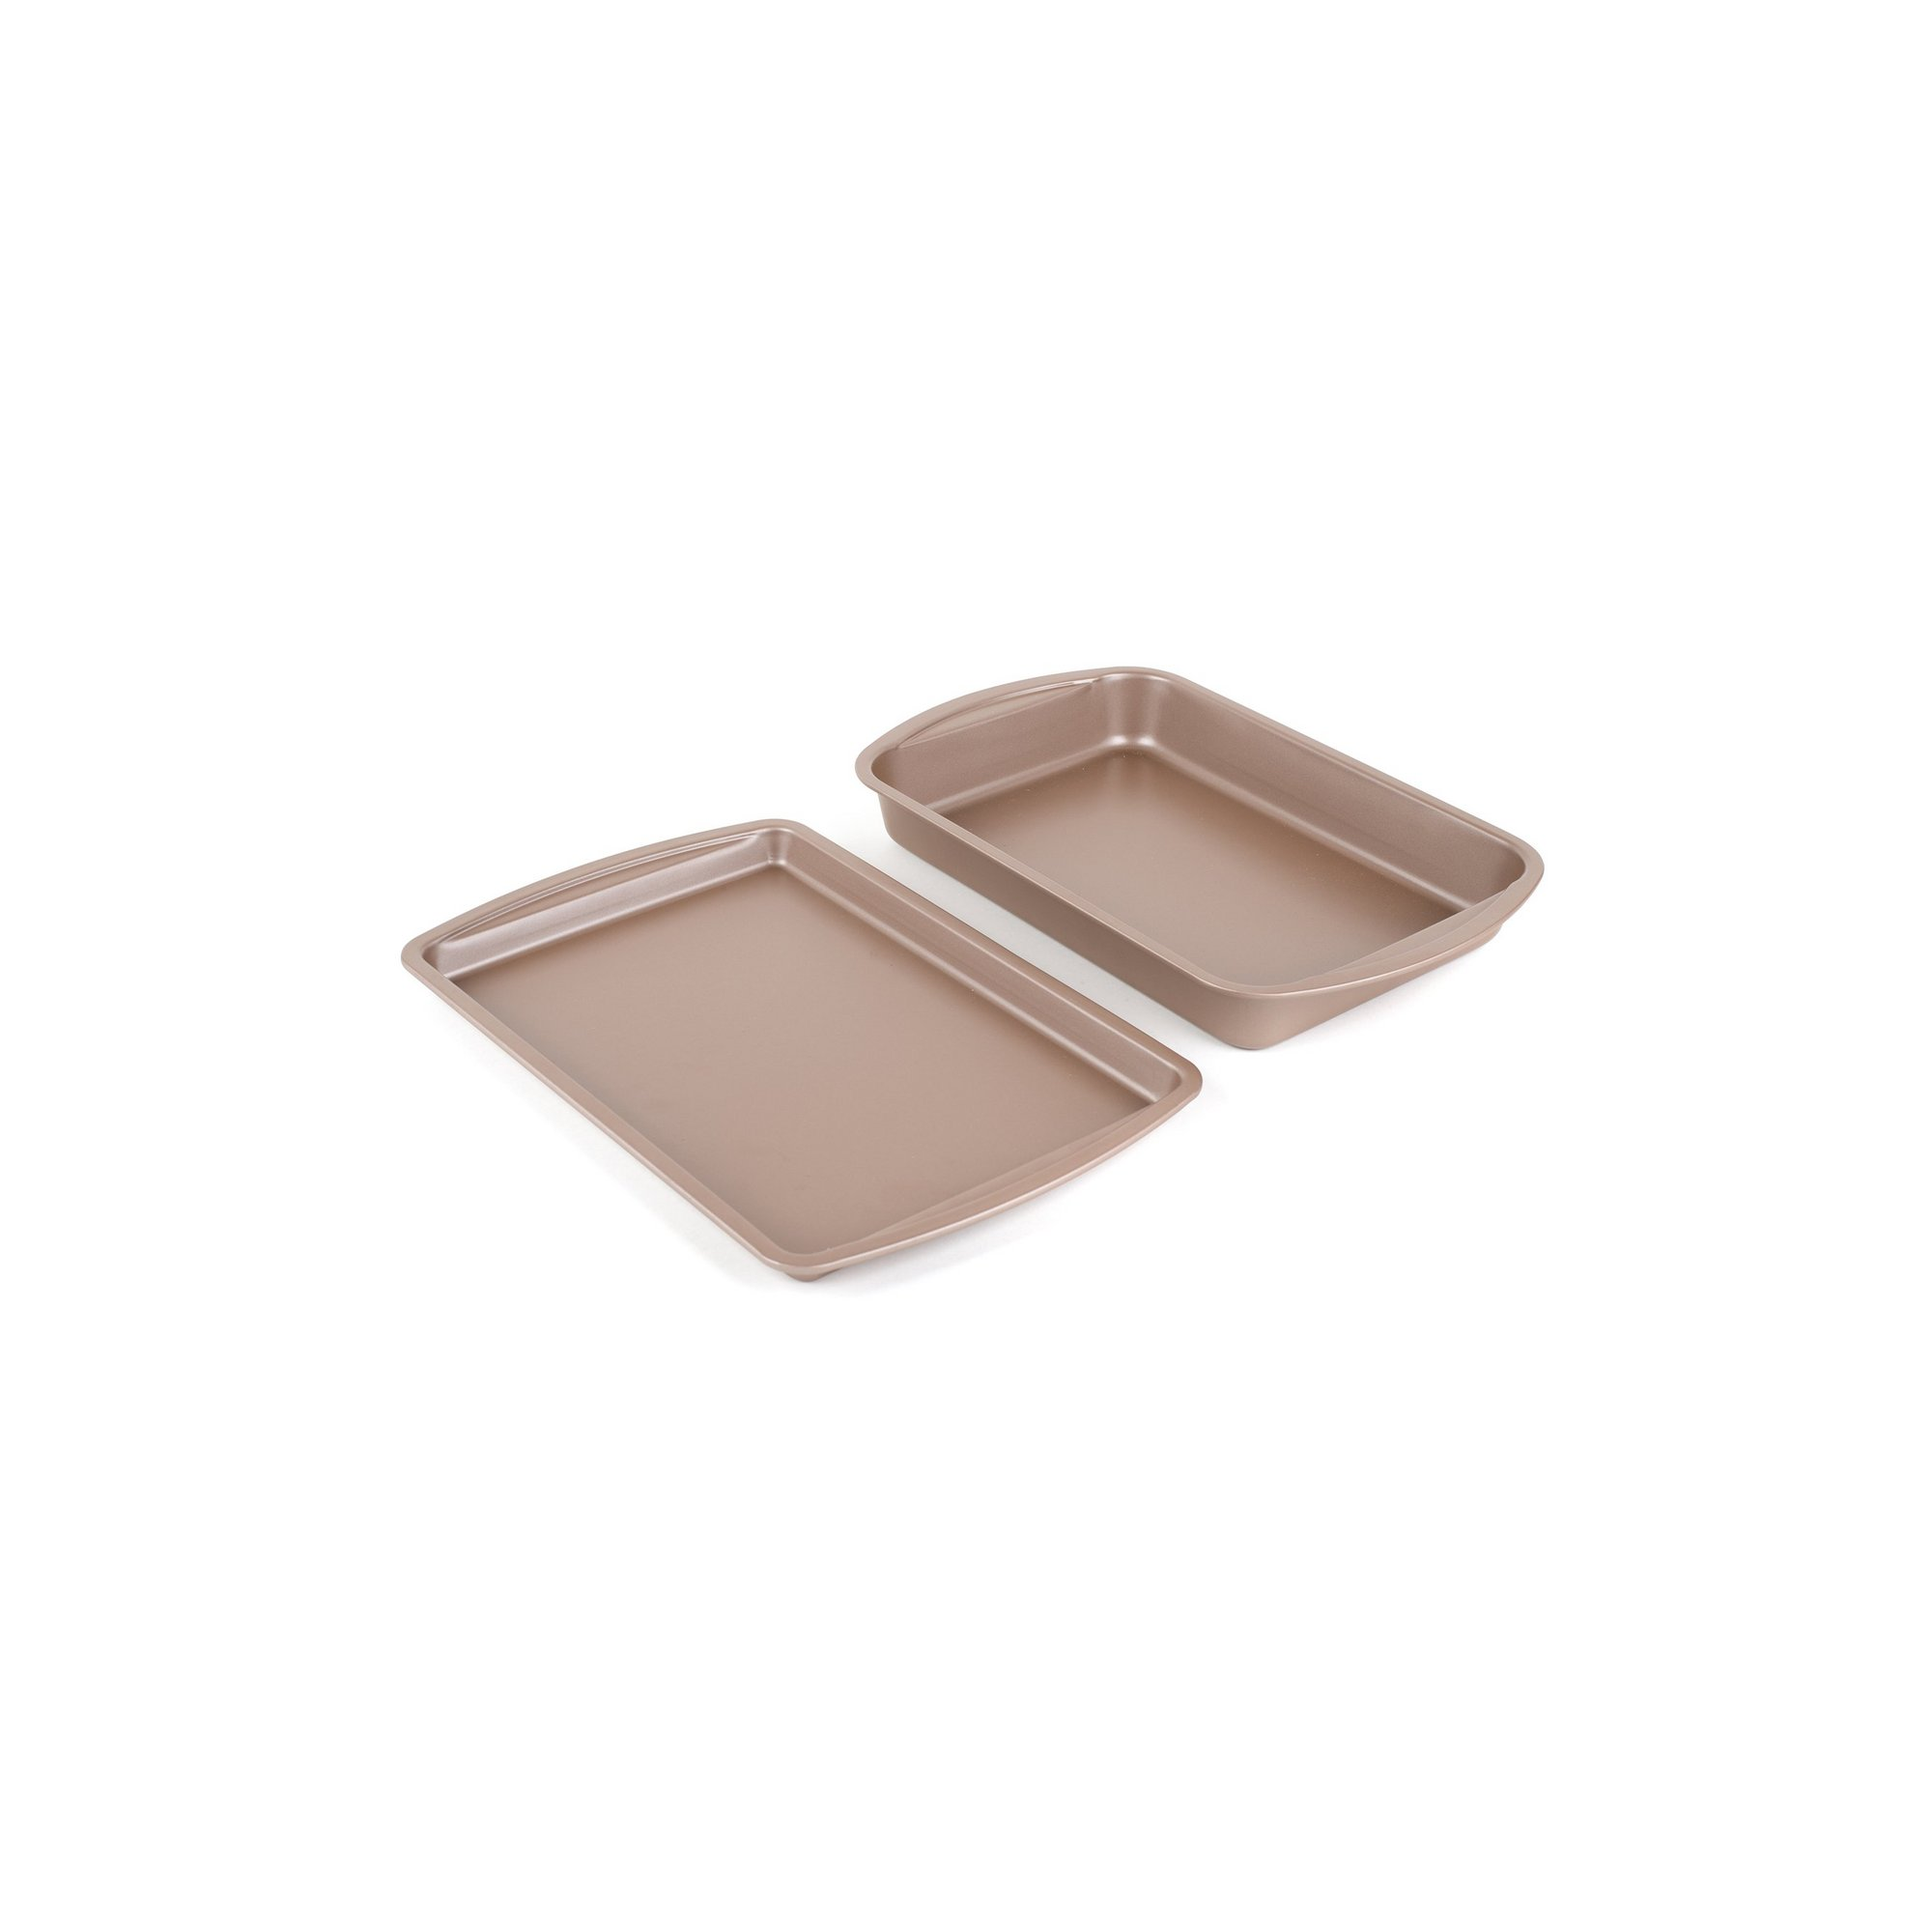 Image of 2 Piece Salter Oven Roasting Tray Combo Set